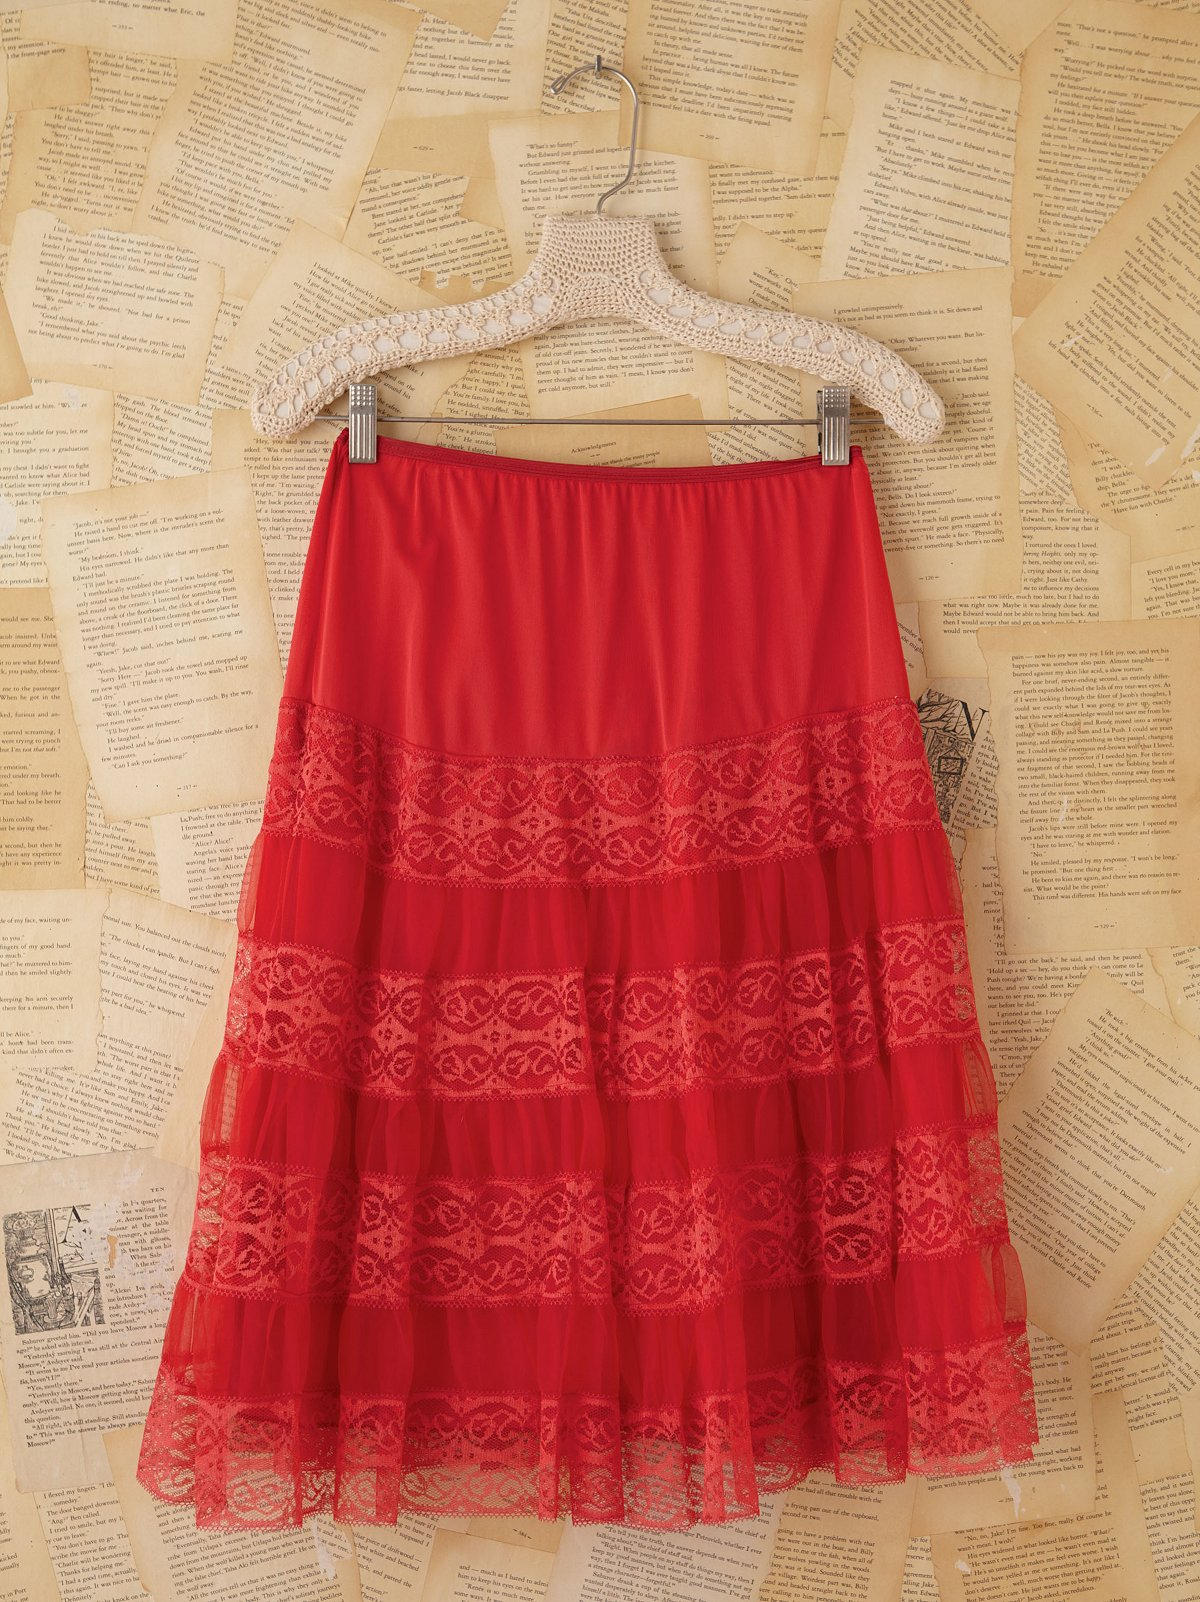 Vintage Red Mesh and Lace Slip Skirt